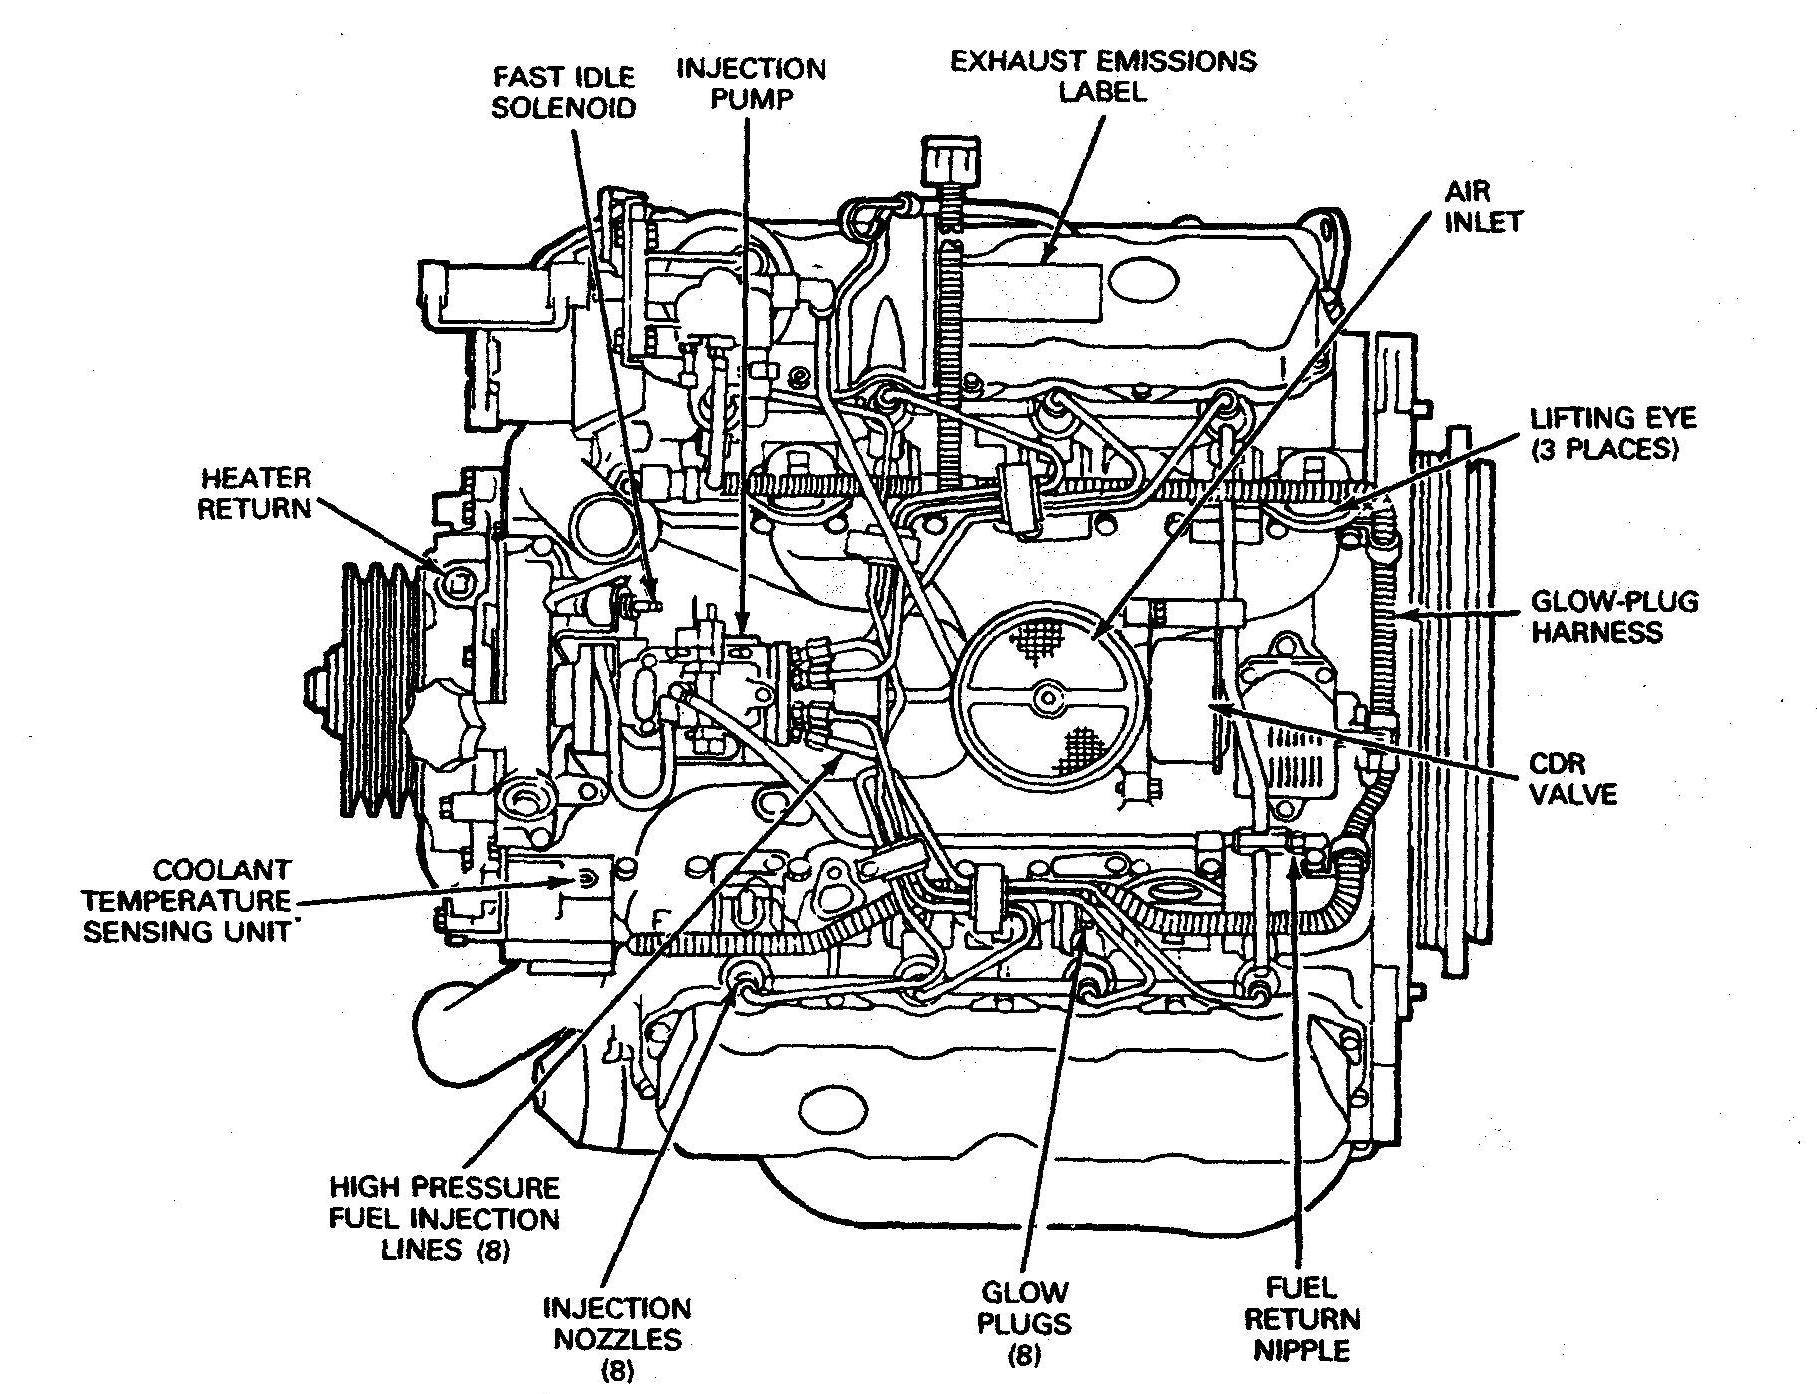 engine and jet drive Ford Motor Parts Diagram 350 Engine Diagram